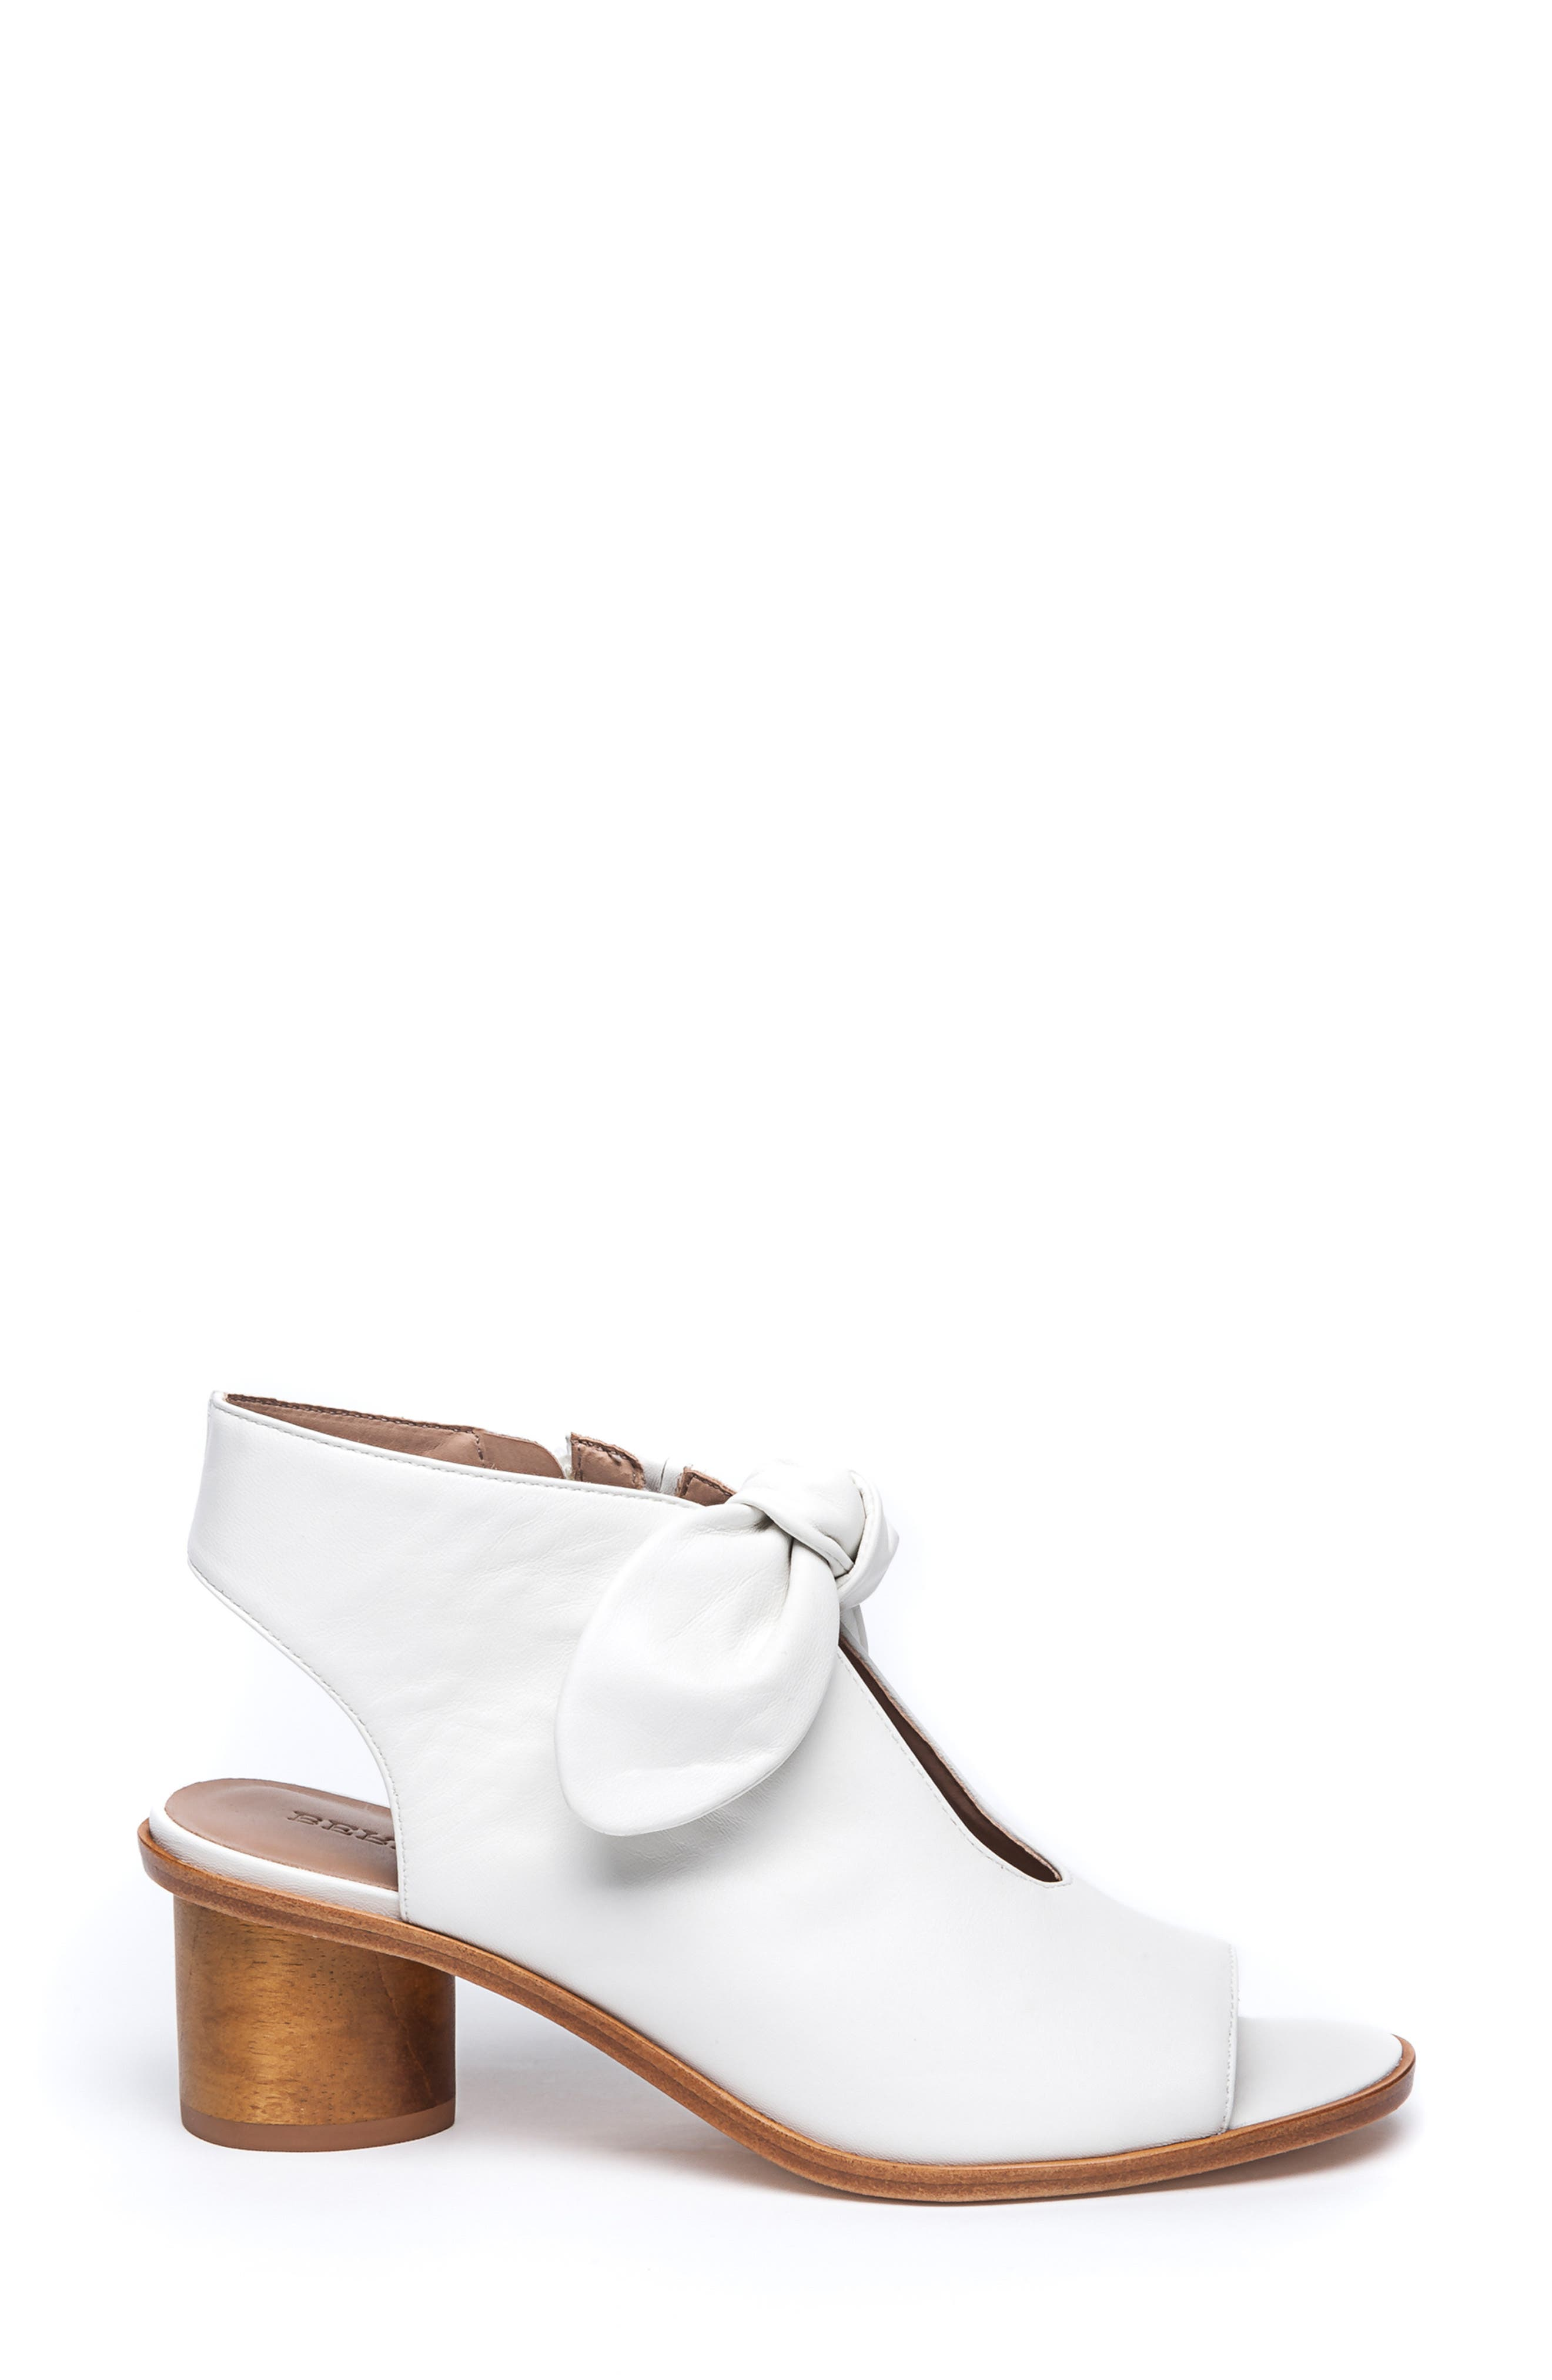 Bernardo Luna Sandal,                             Alternate thumbnail 3, color,                             WHITE LEATHER